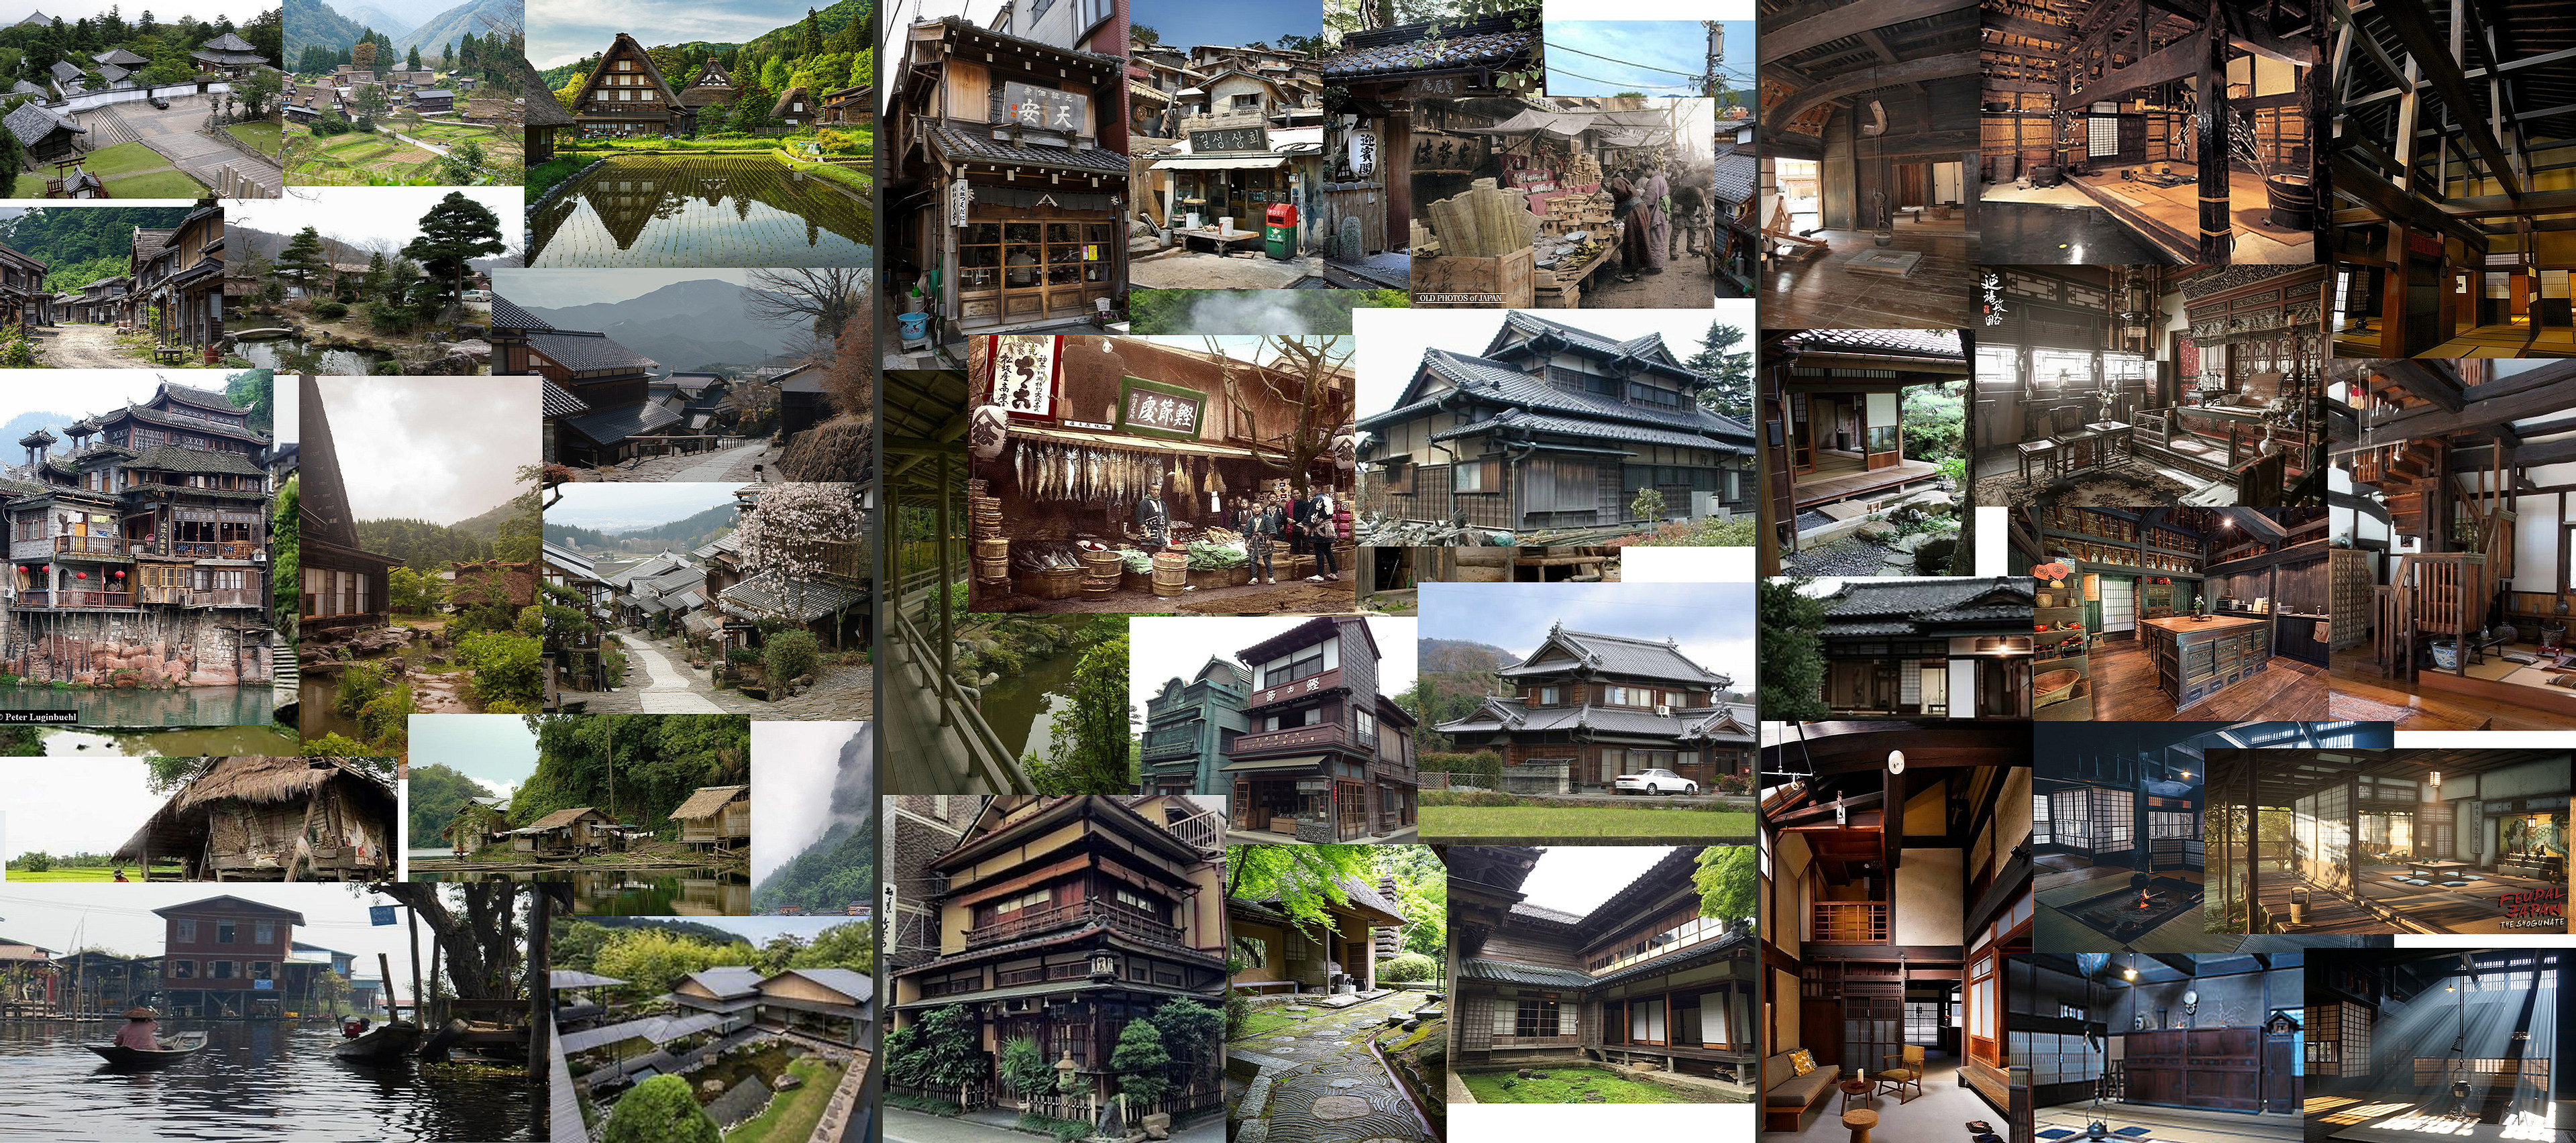 reference used, grouped into large scale village stuff, close ups of structures and interiors